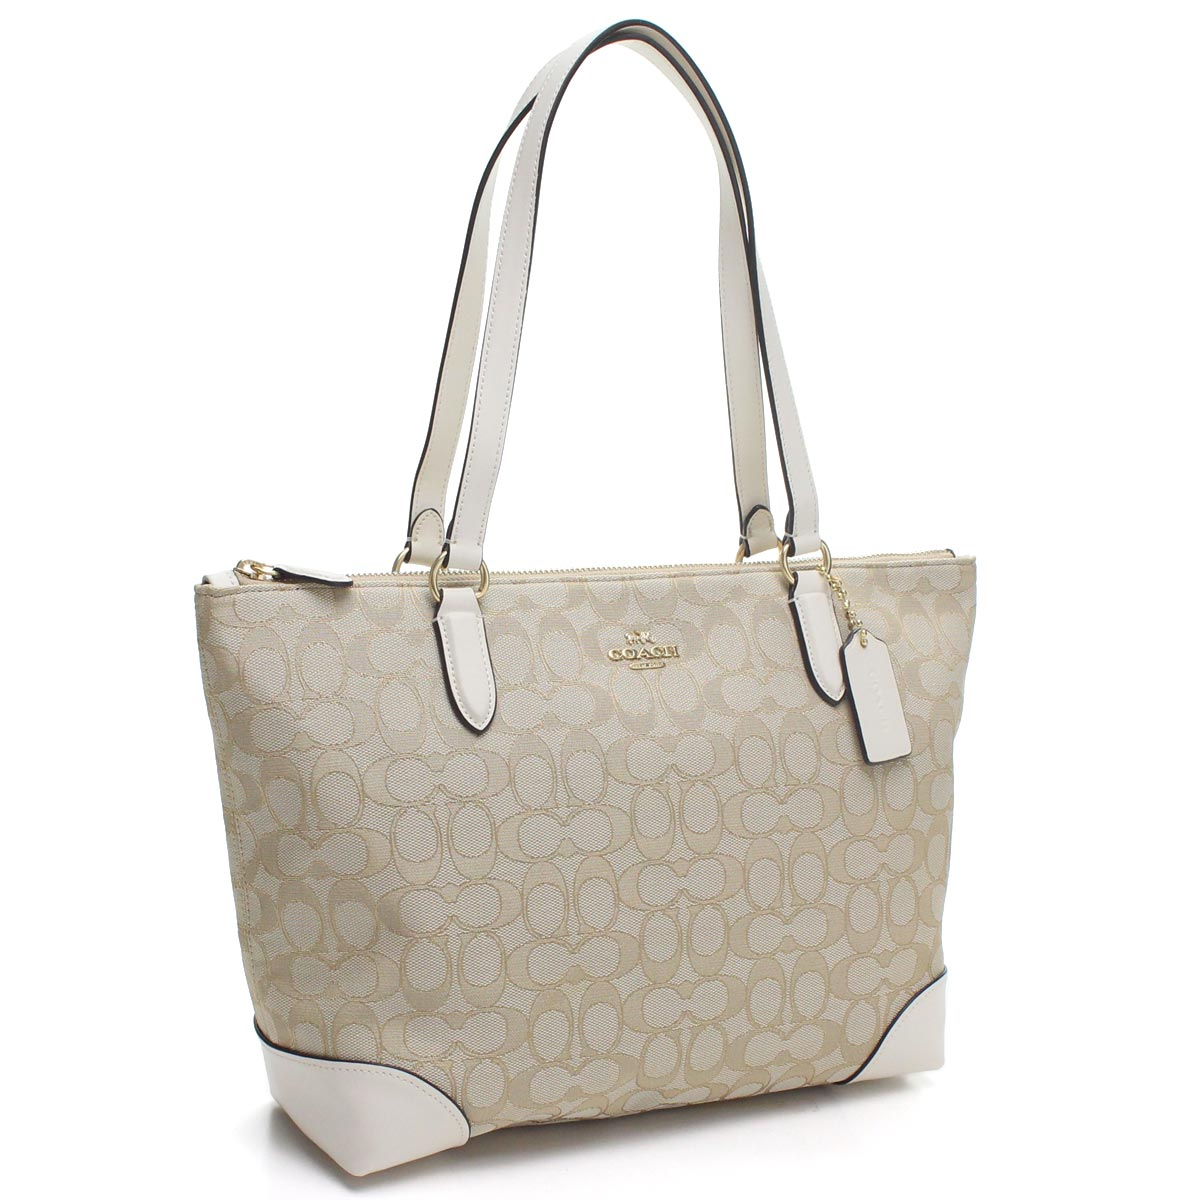 Hit The Total Brand Whole Coach Signature Tote Bag F29958 Imdqc Beige System White Rakuten Global Market